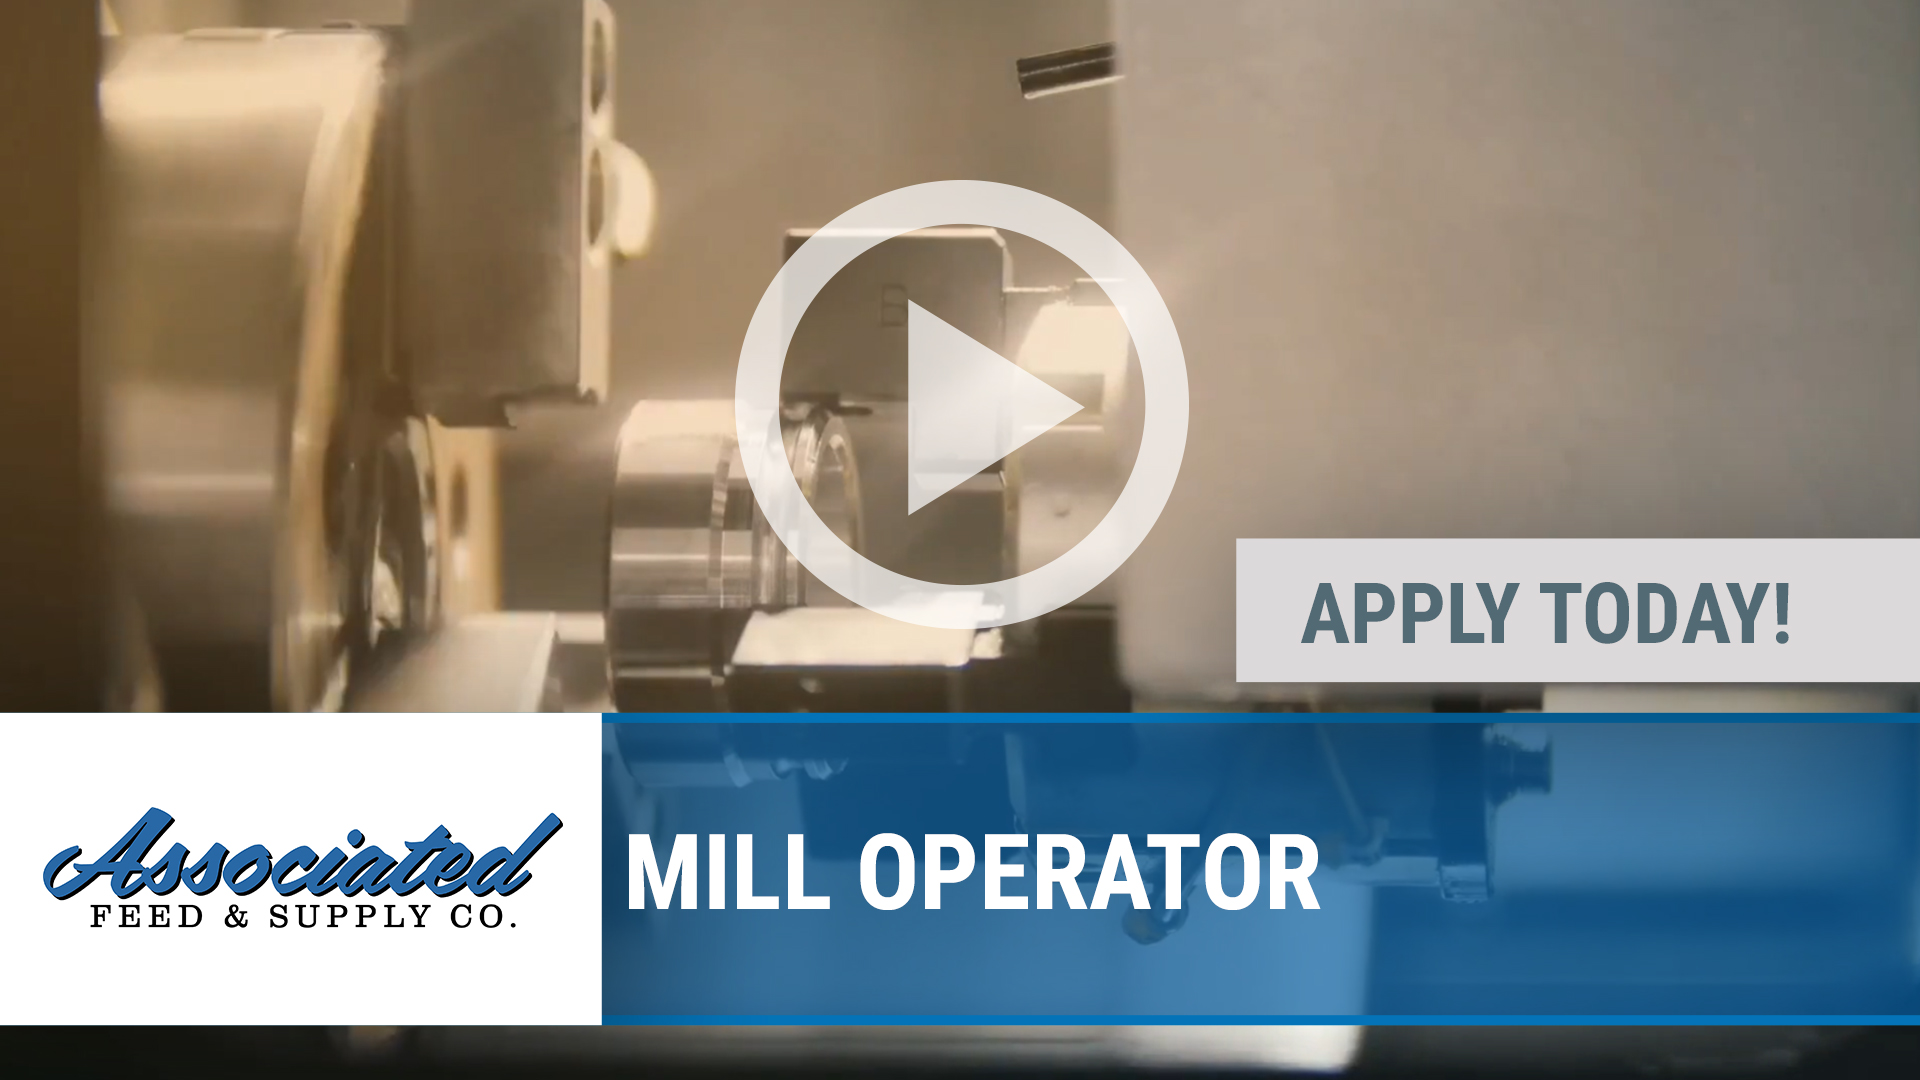 Watch our careers video for available job opening MILL OPERATOR in Turlock, CA